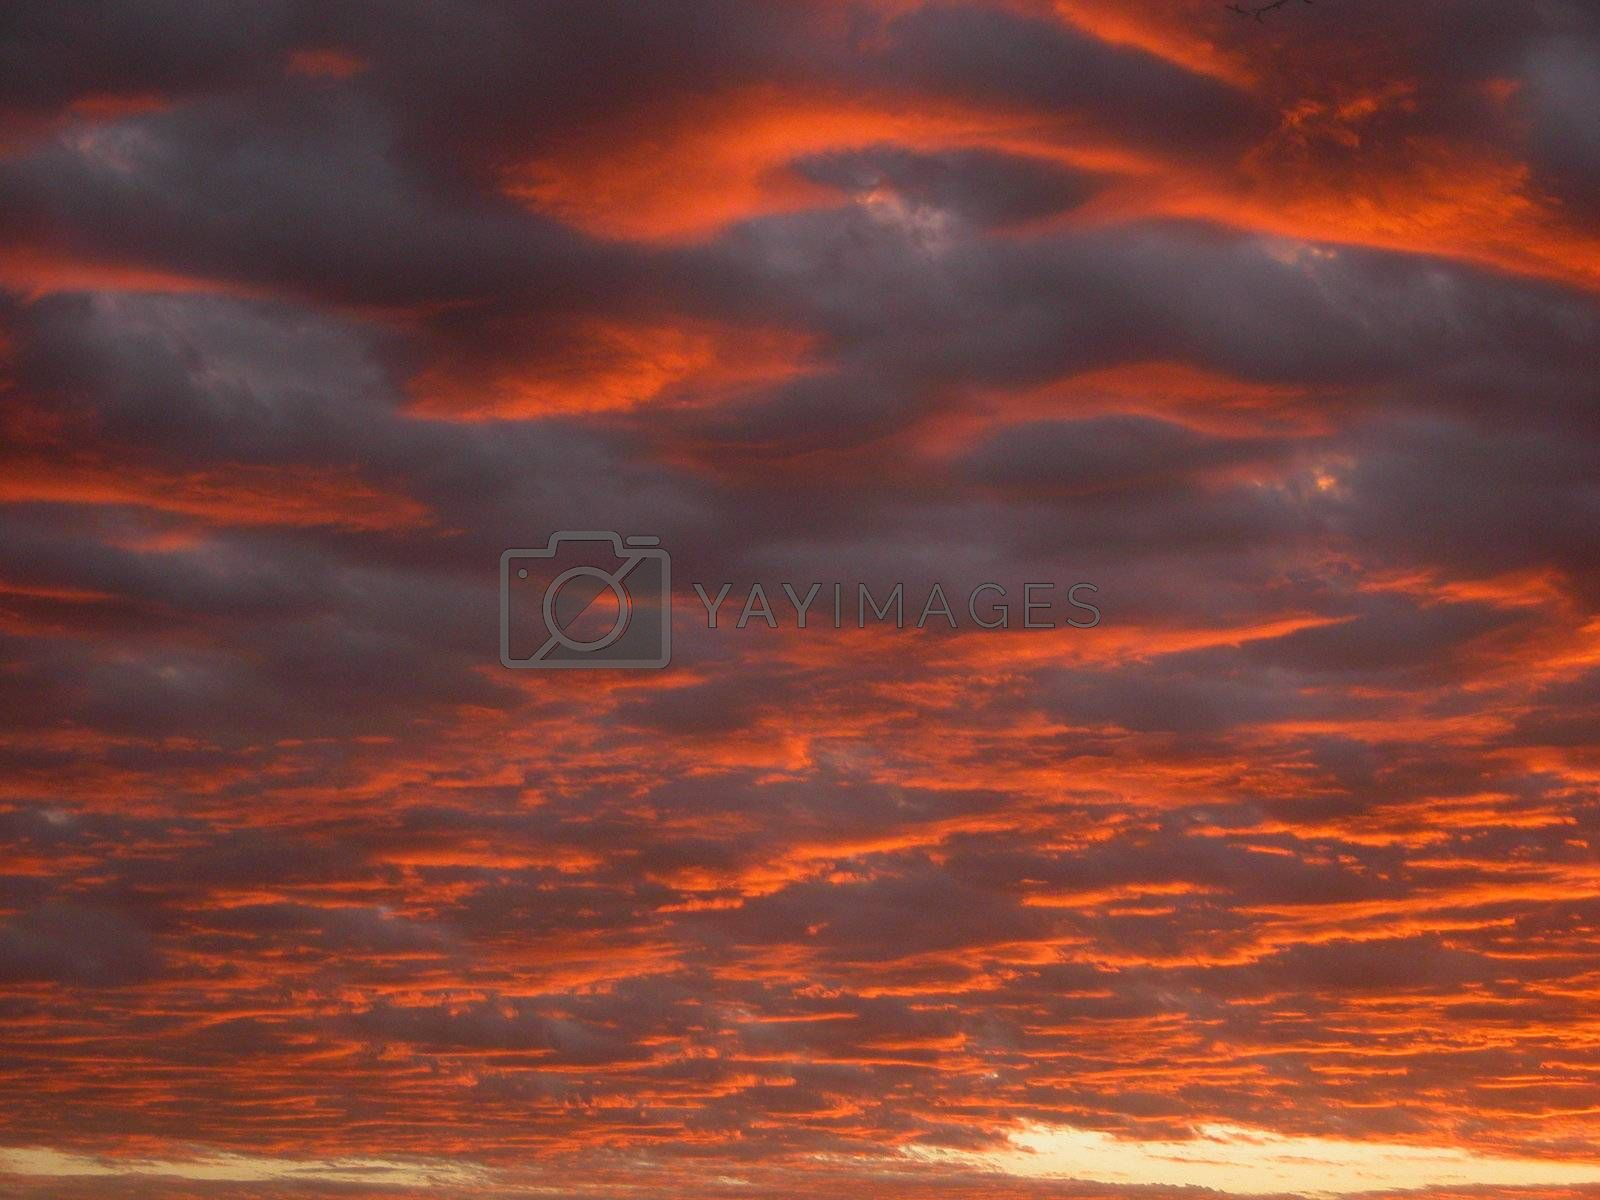 Un-retouched clouds in fiery sky